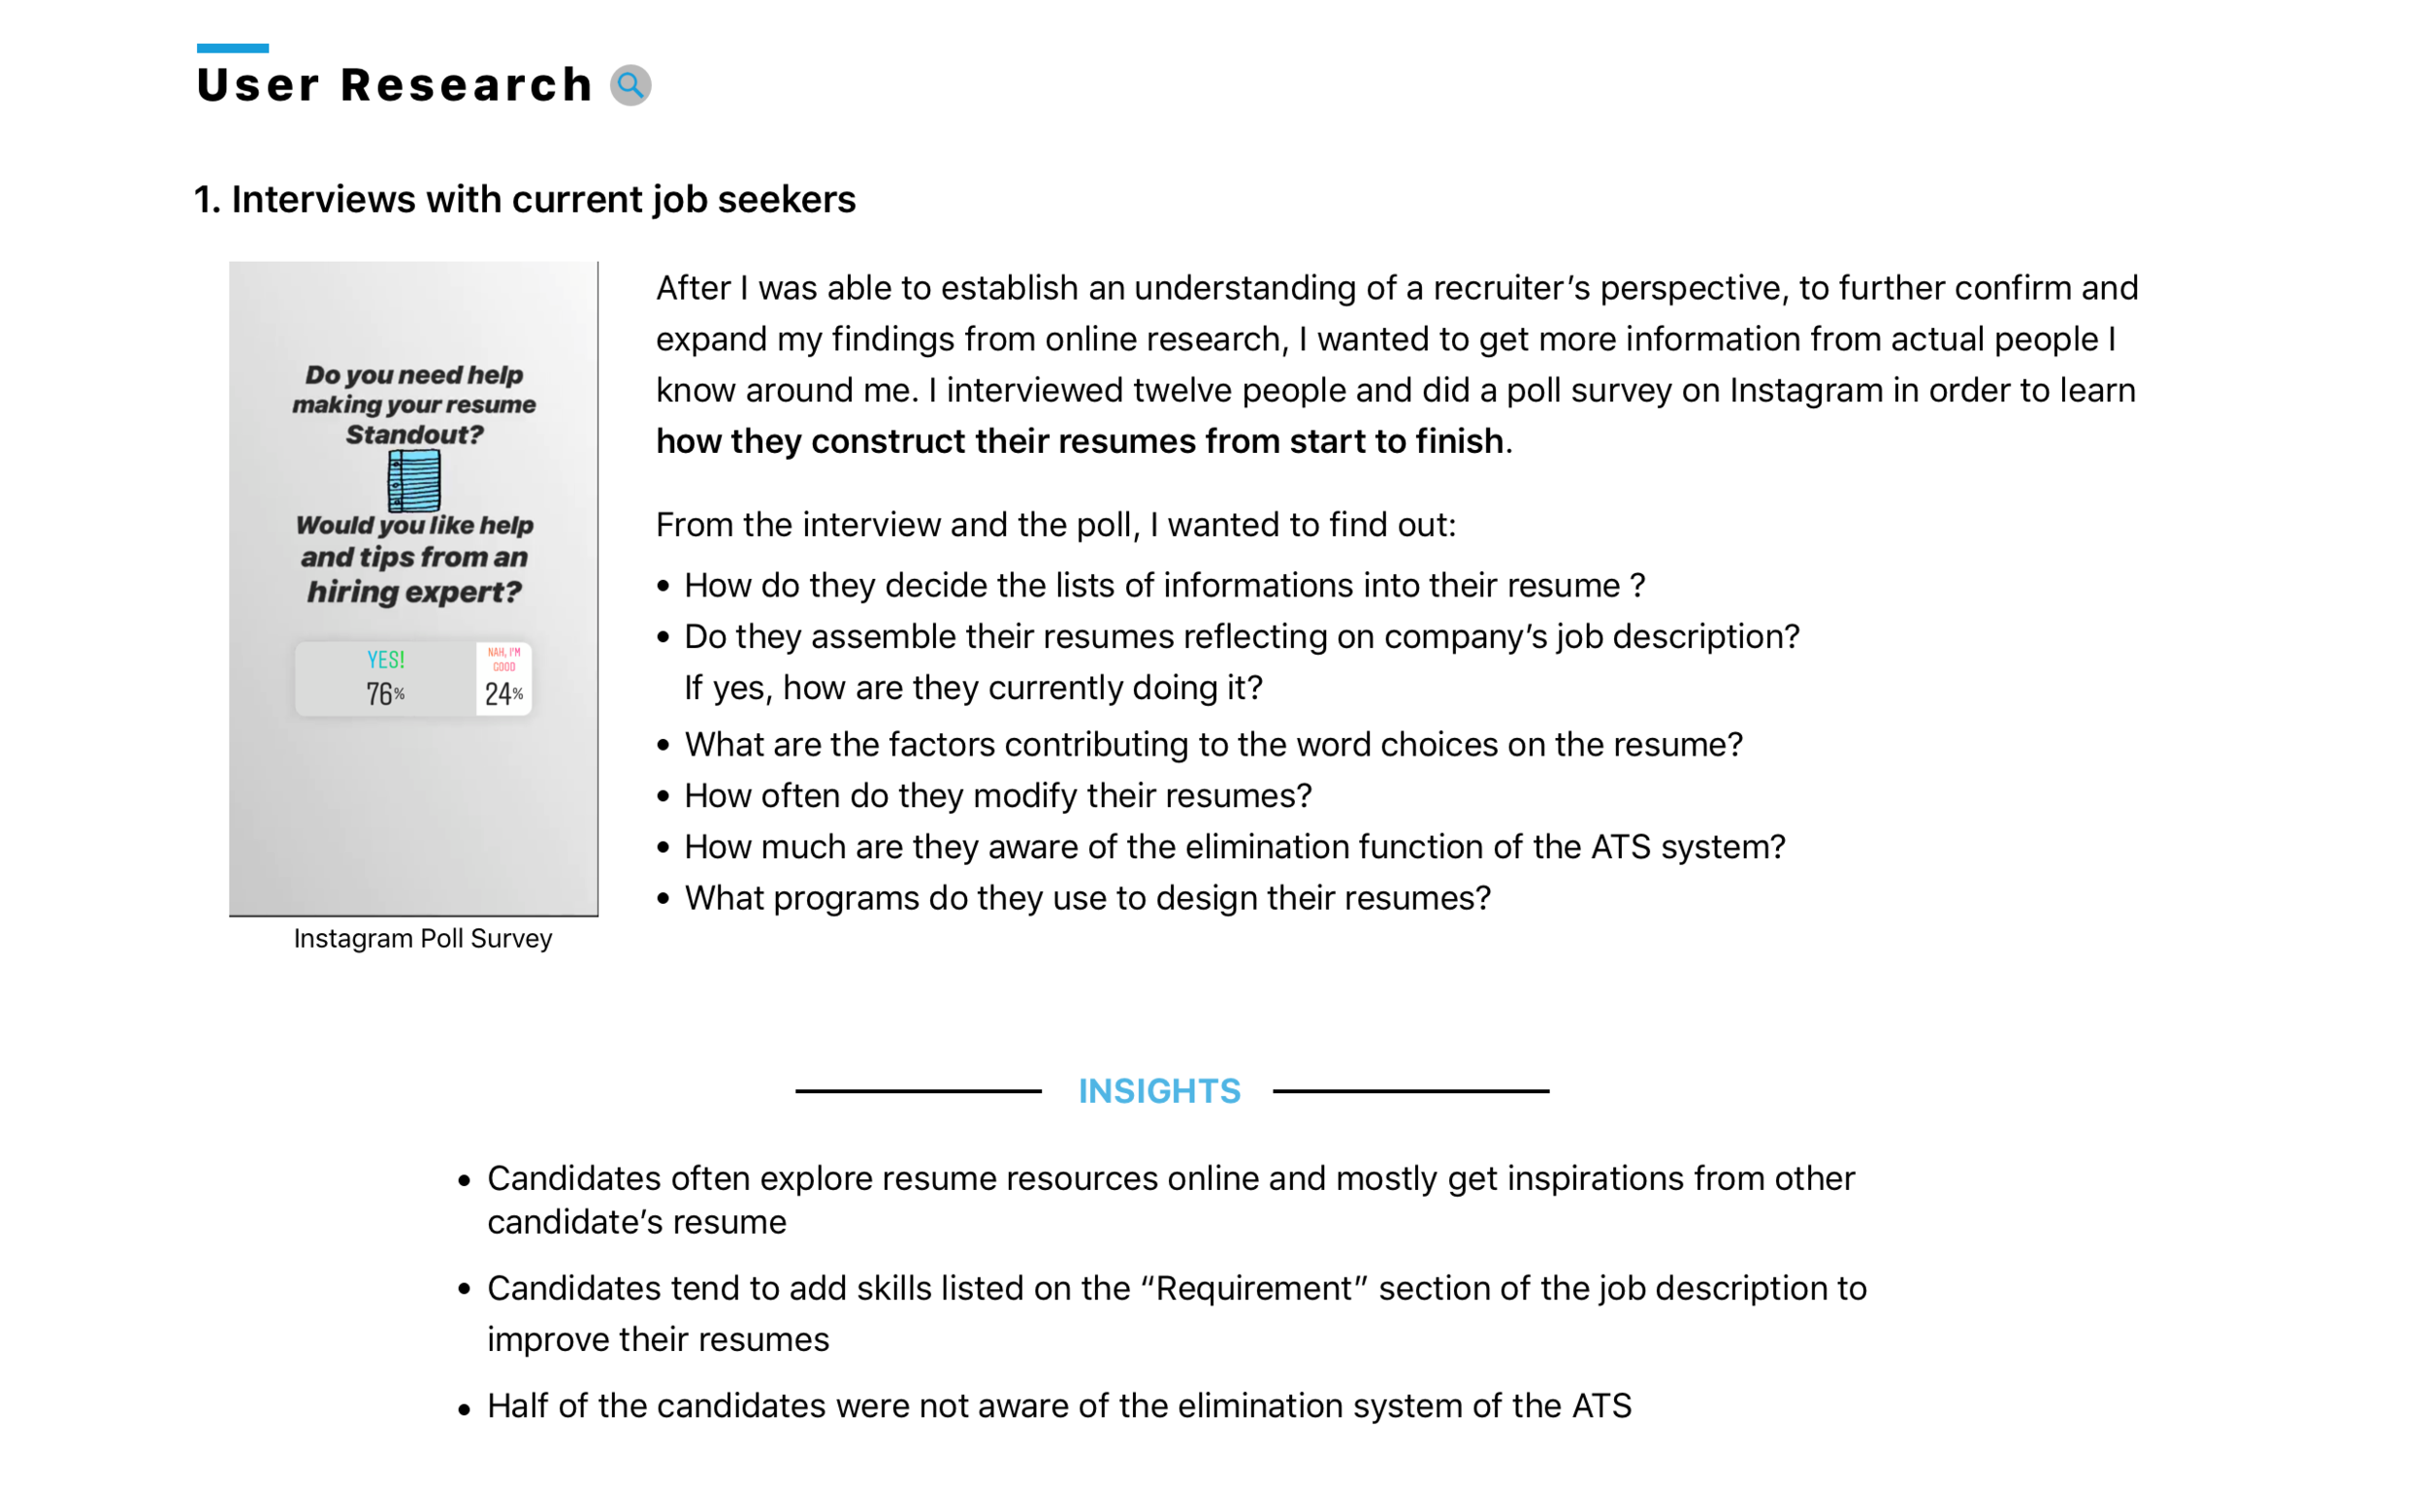 Research_1 Copy 4.png